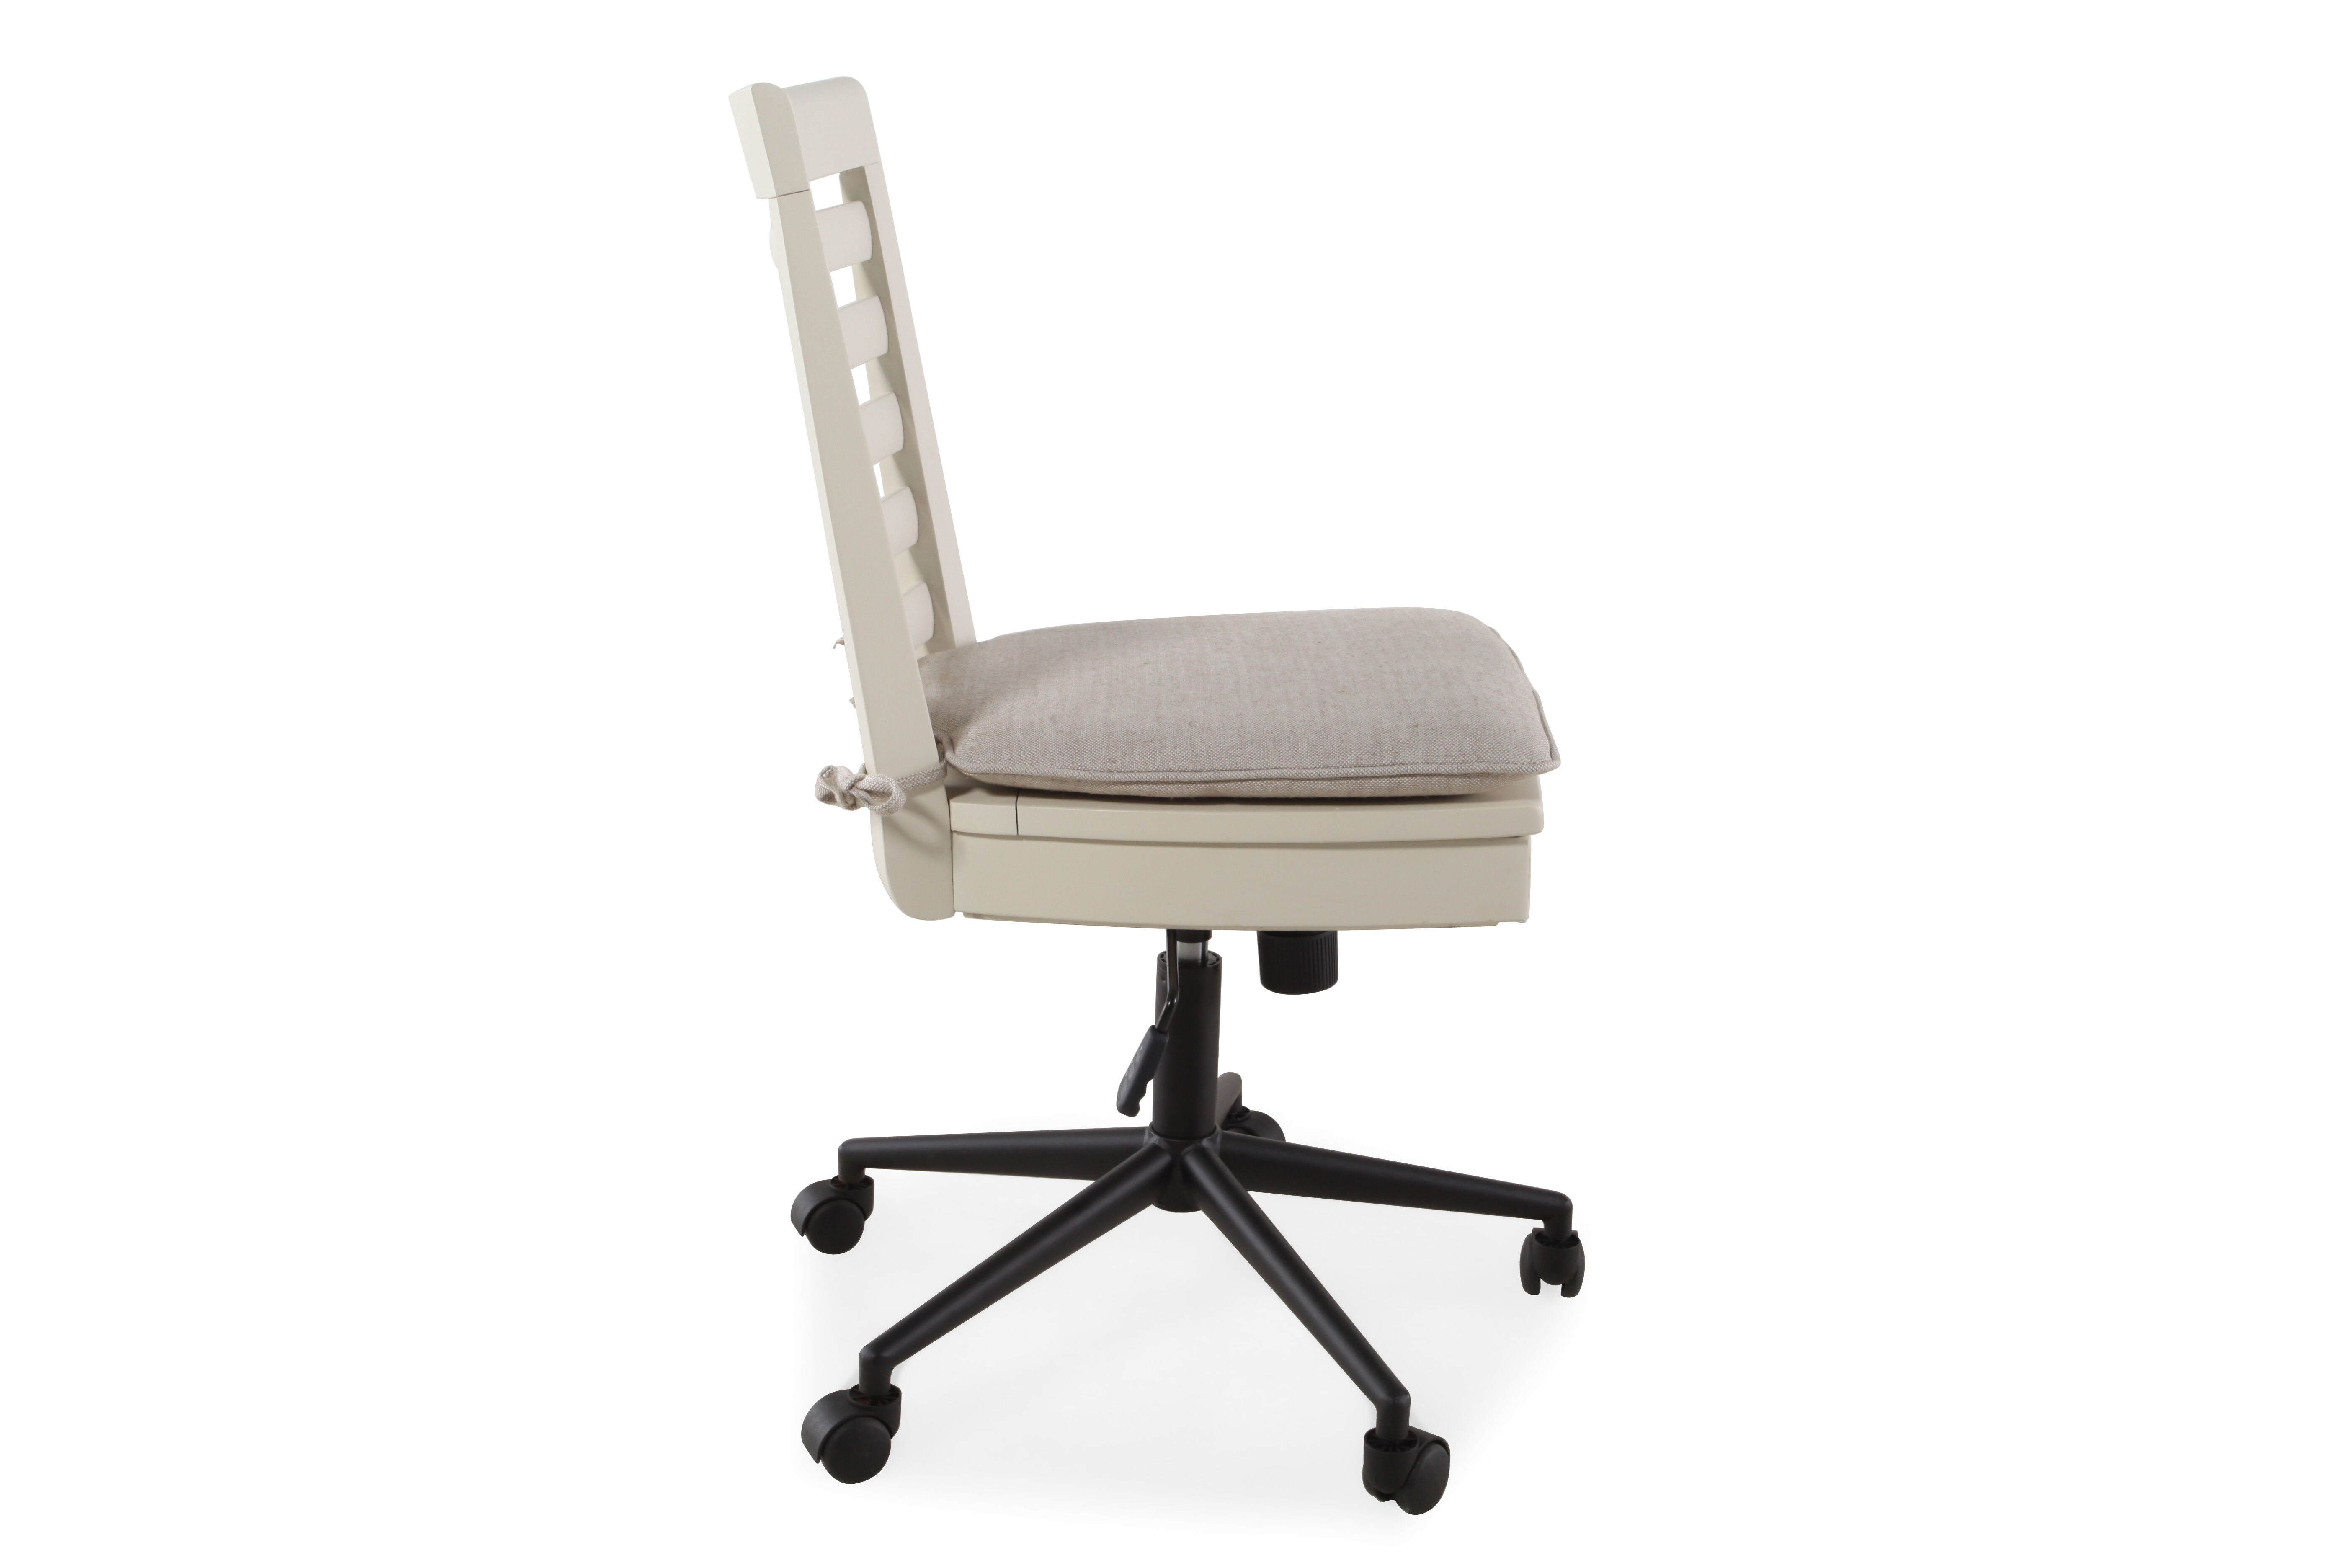 swivel chair child how to weave a seat with shaker tape universal myroom white desk mathis